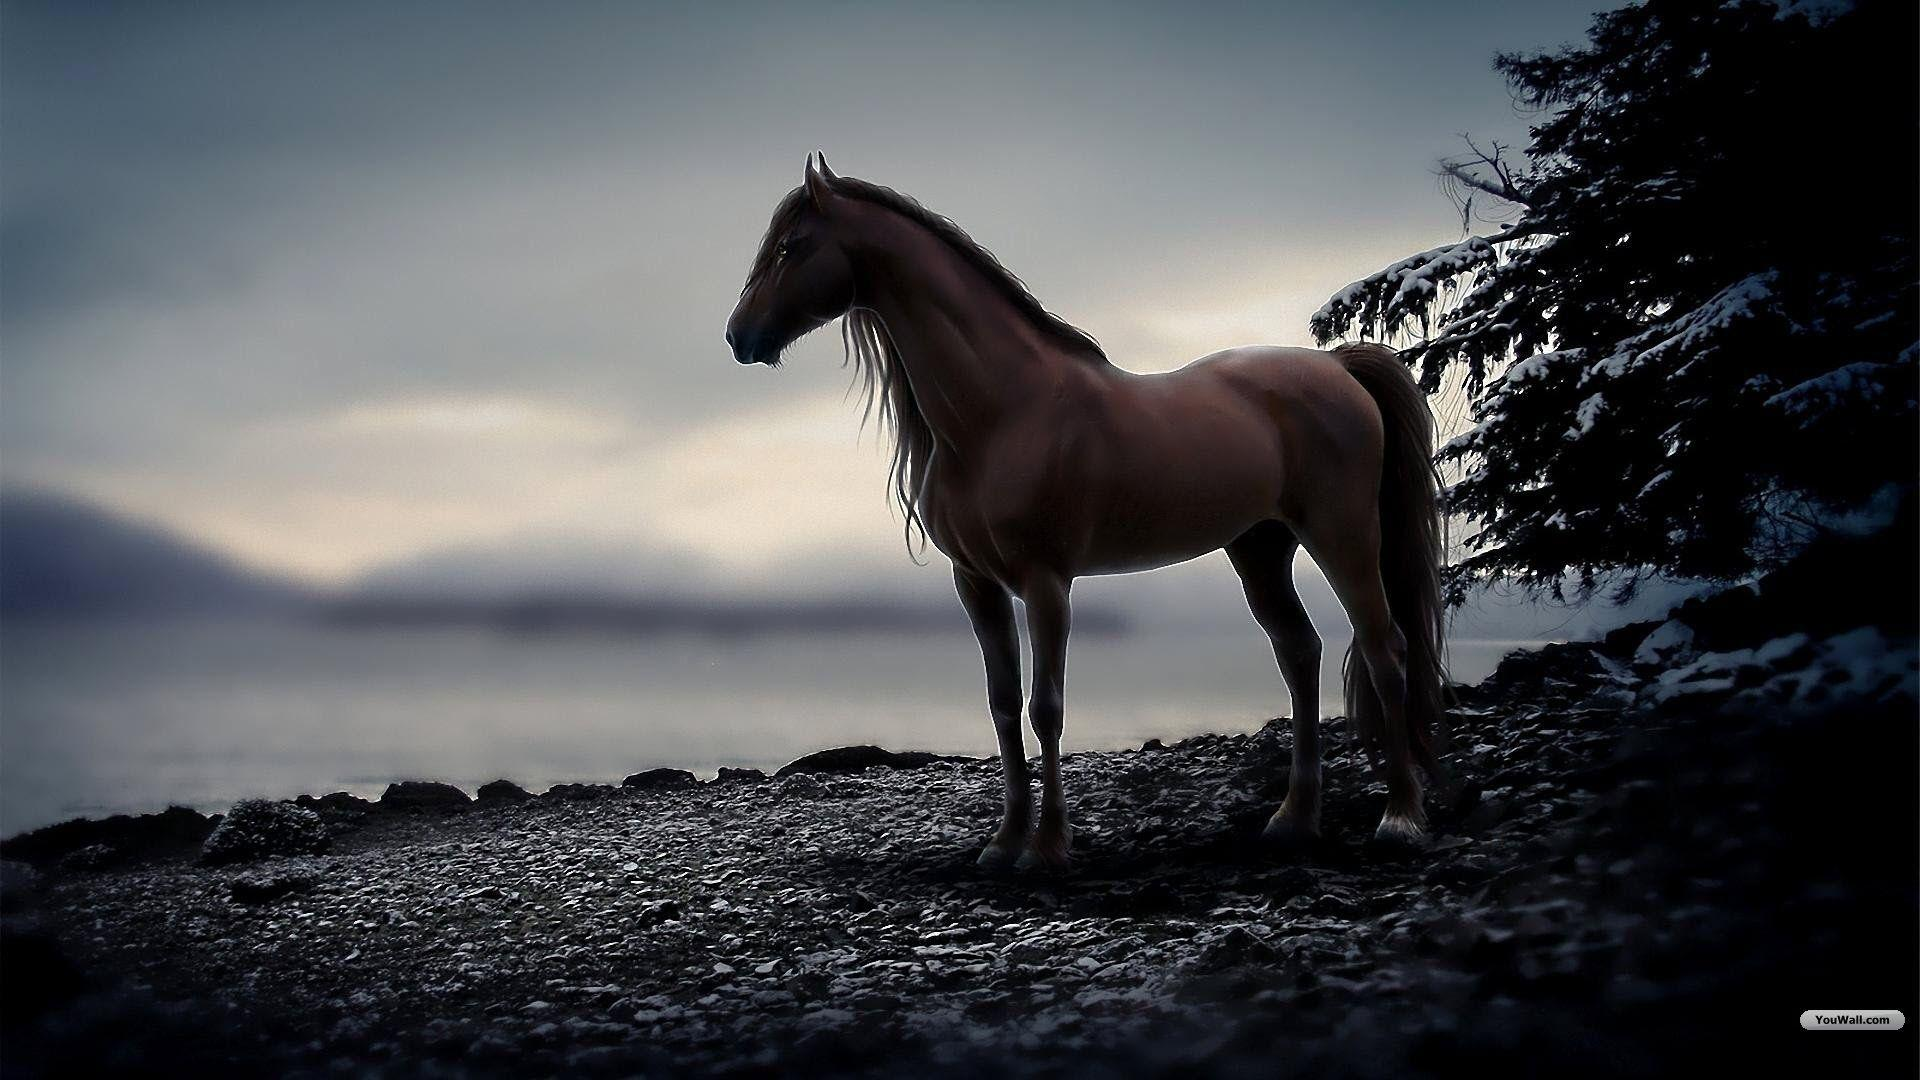 Wallpapers Horse - Wallpaper Cave - photo#47